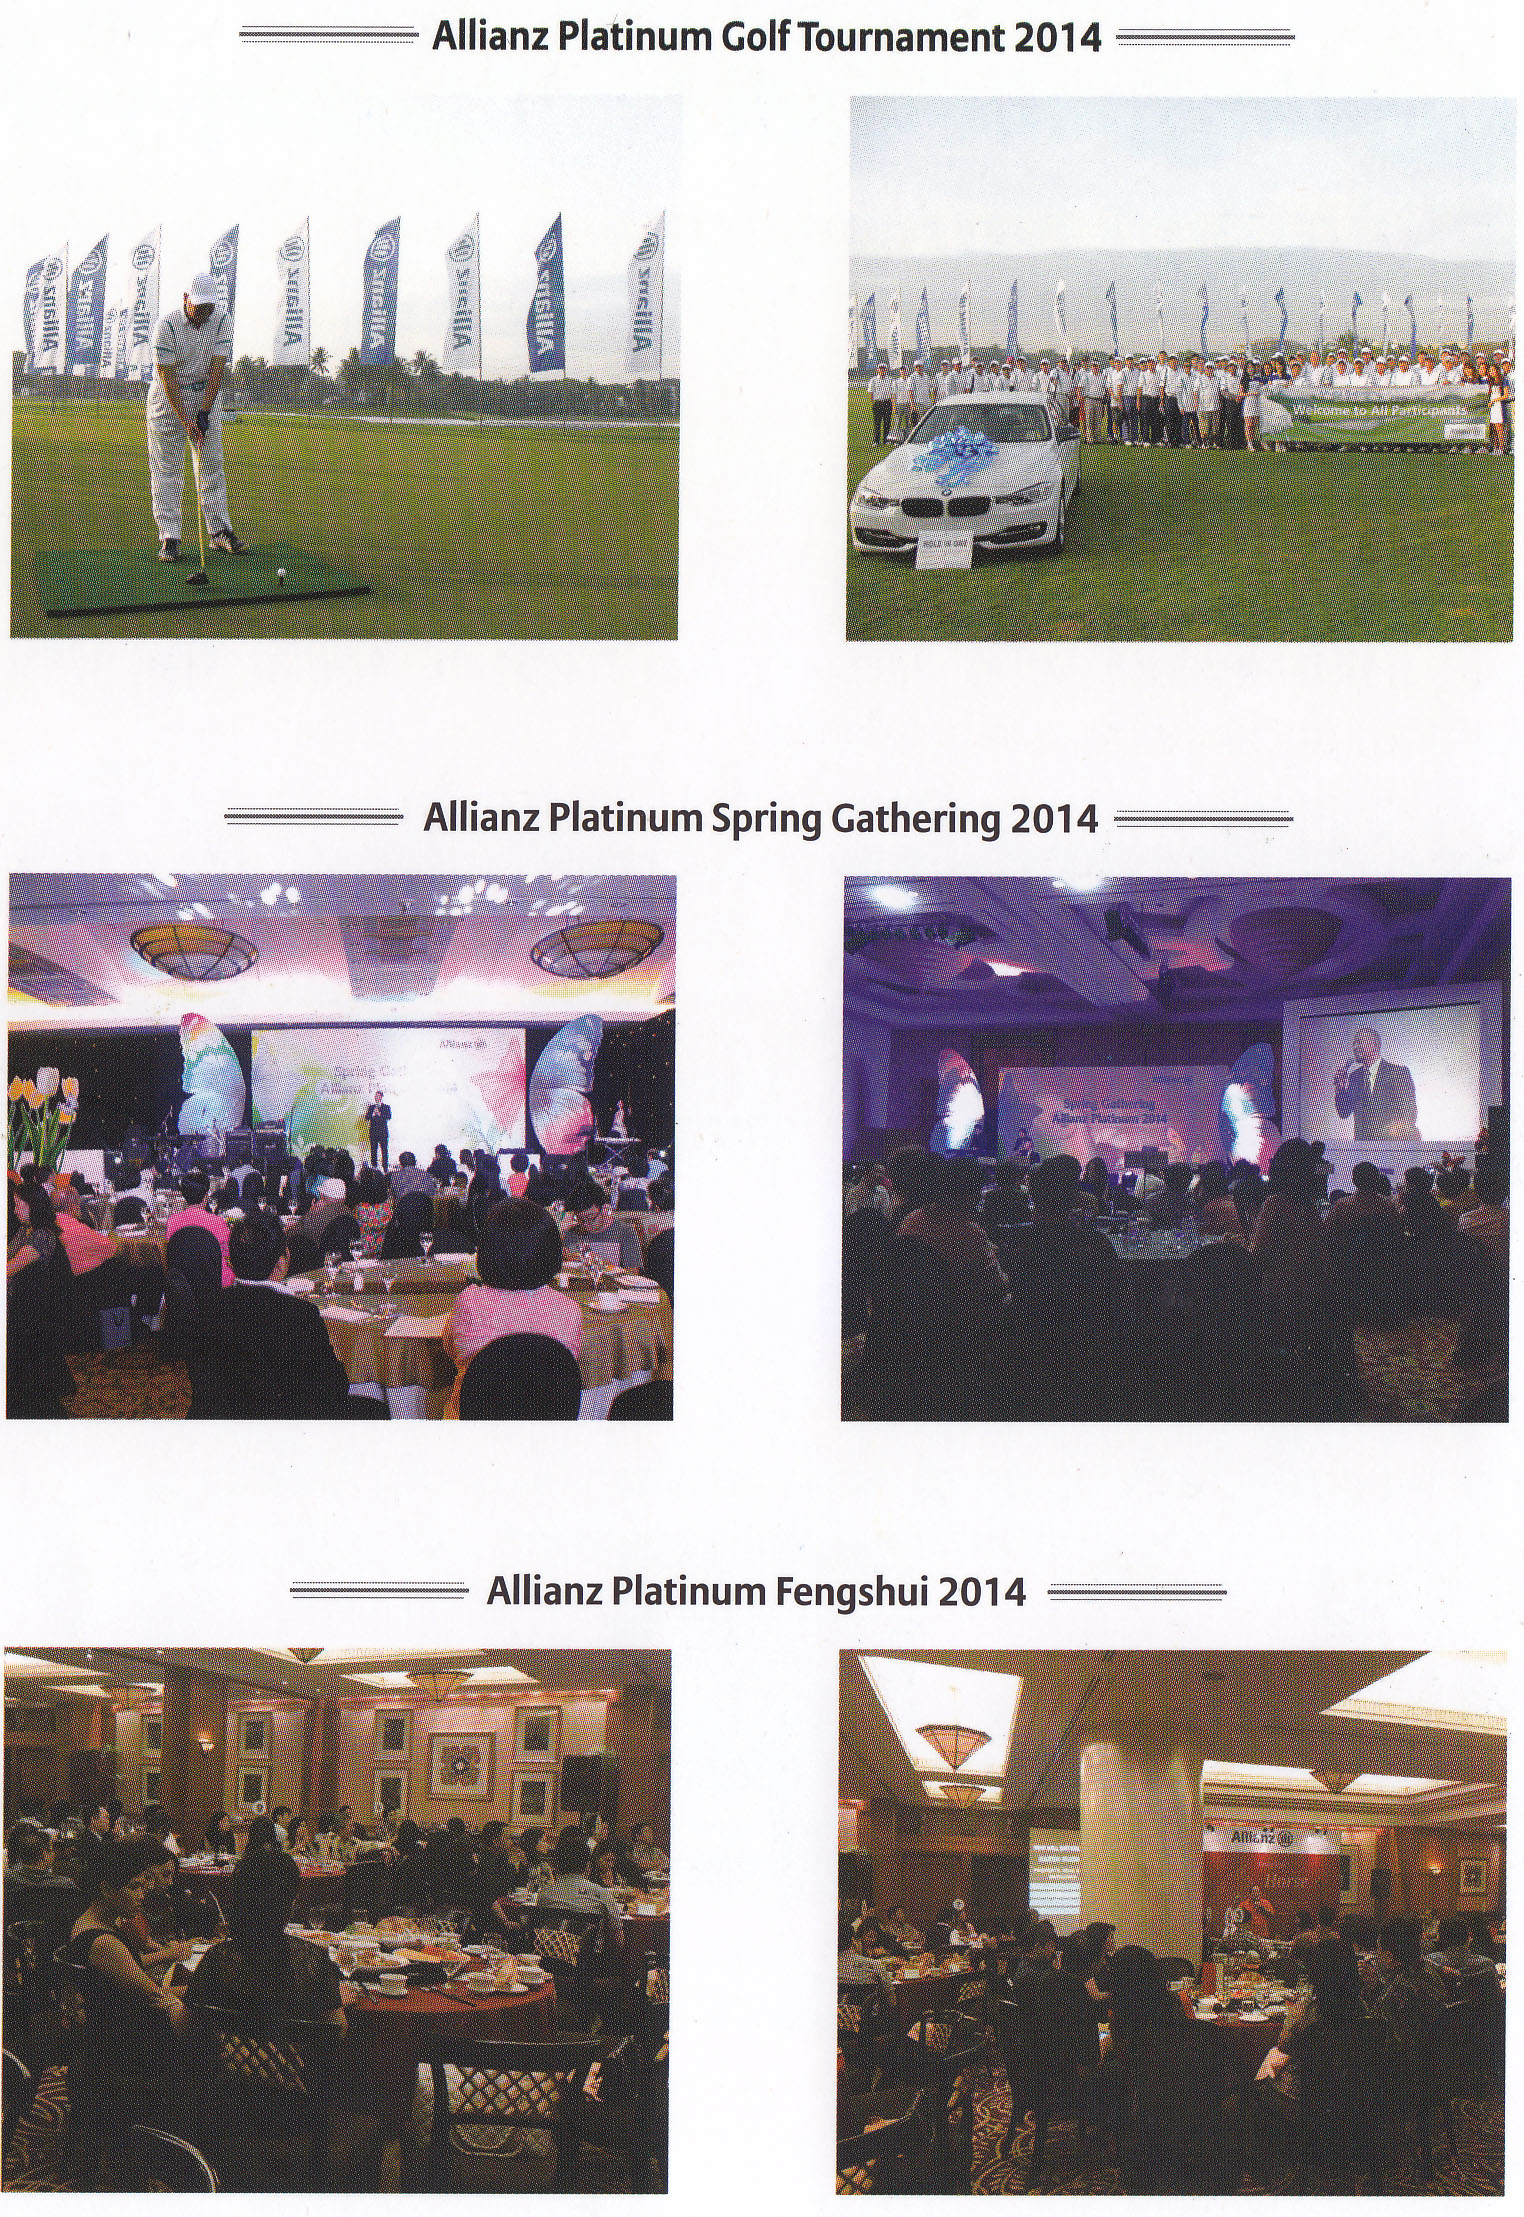 allianz platinum event